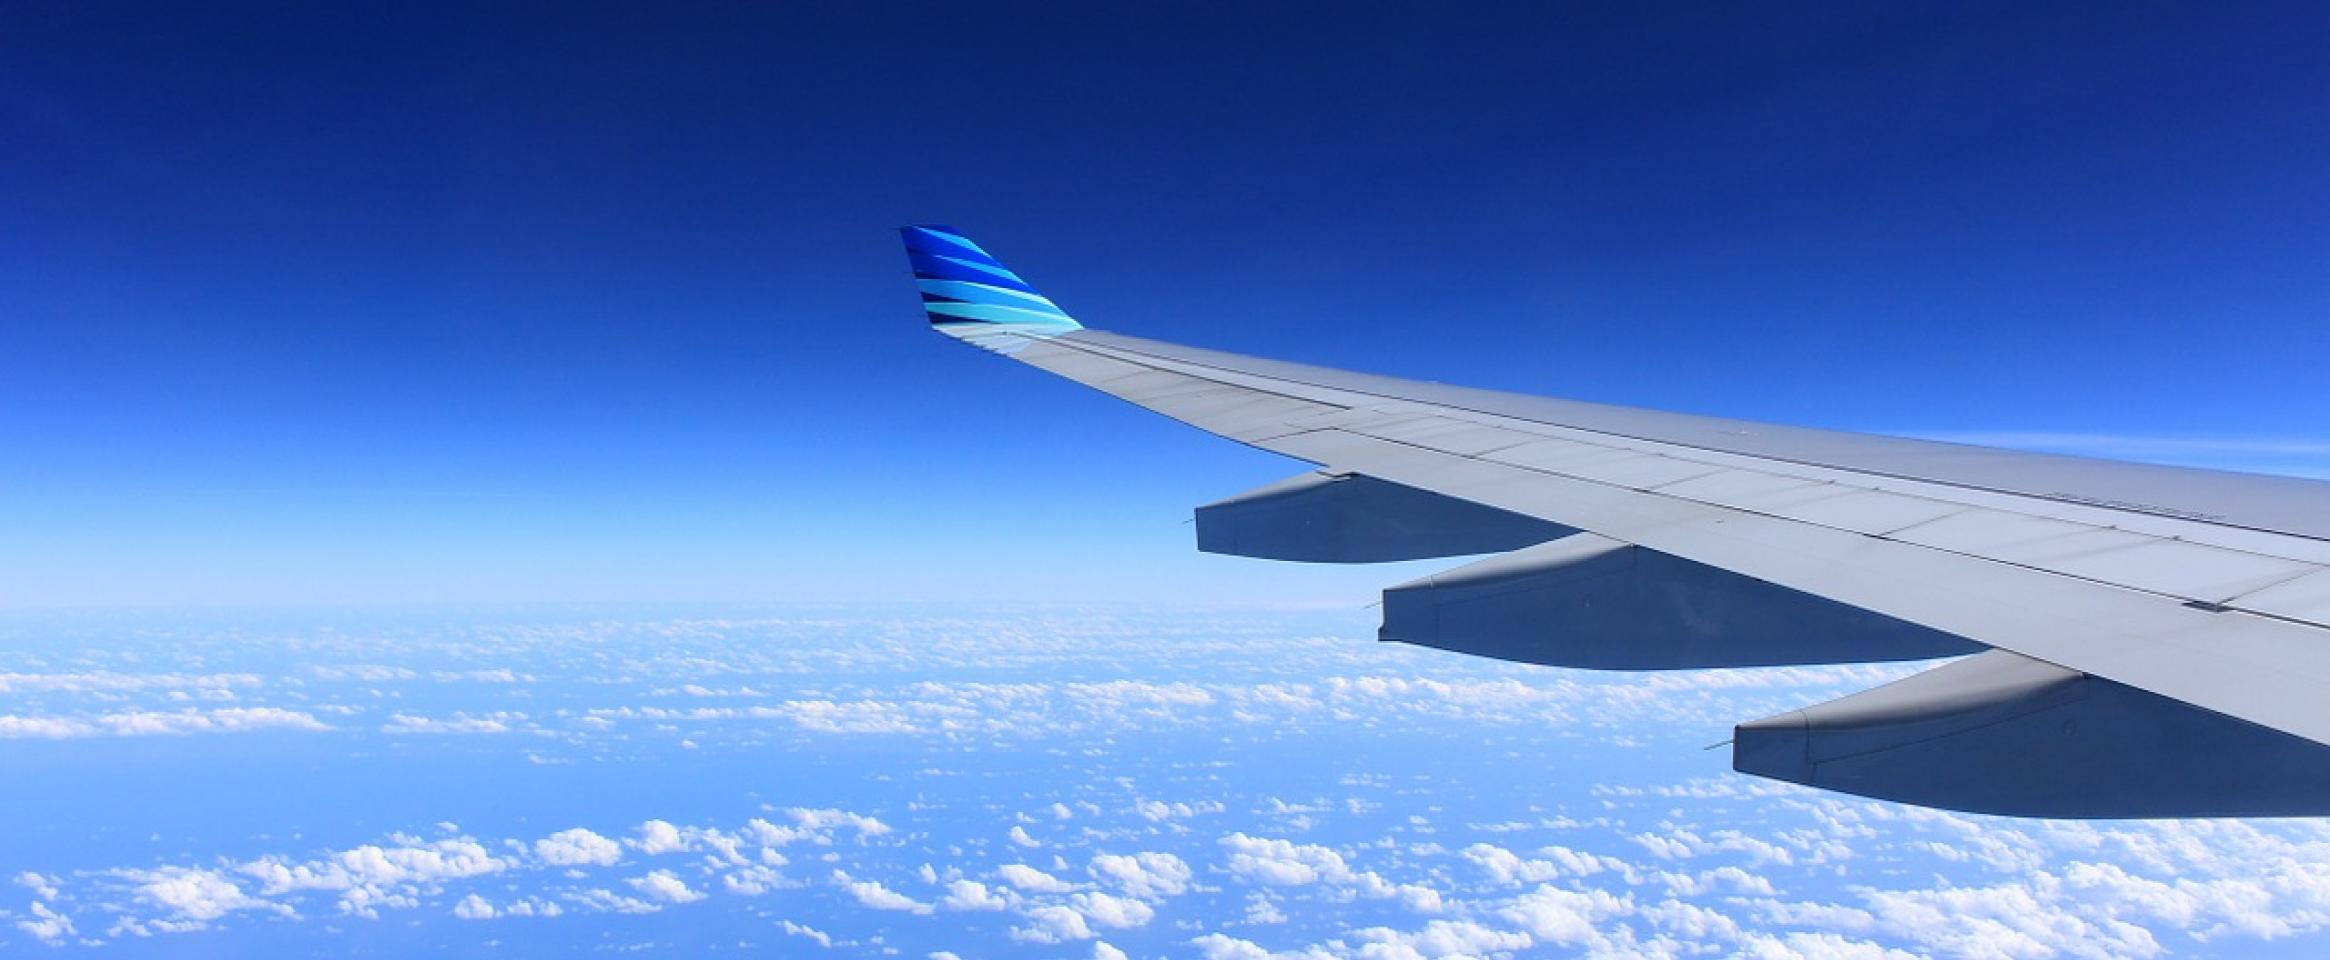 A photo of a airplane wing during a flight